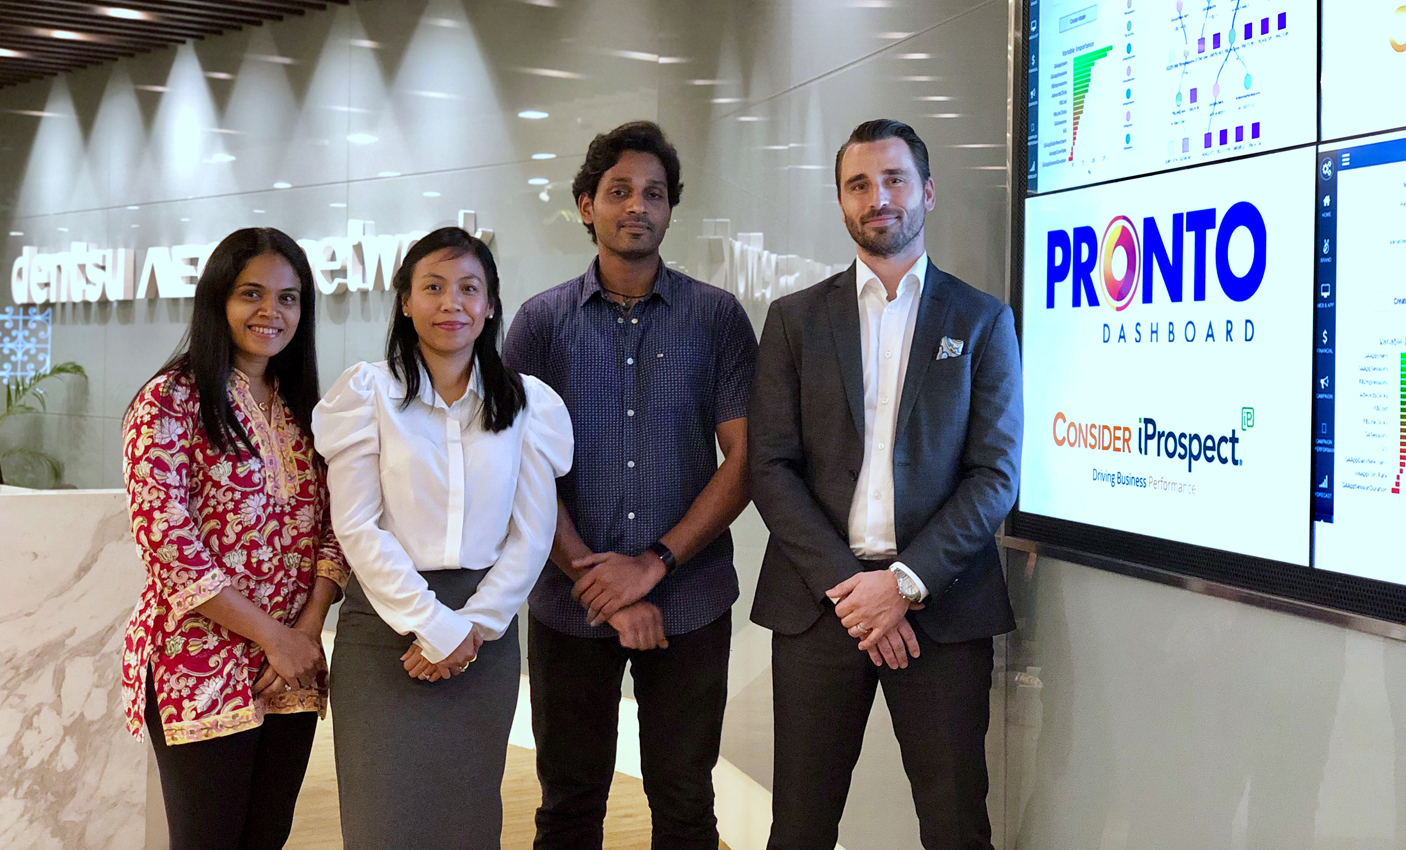 Consider iProspect Malaysia introduces Pronto an AI Business Intelligence Tool